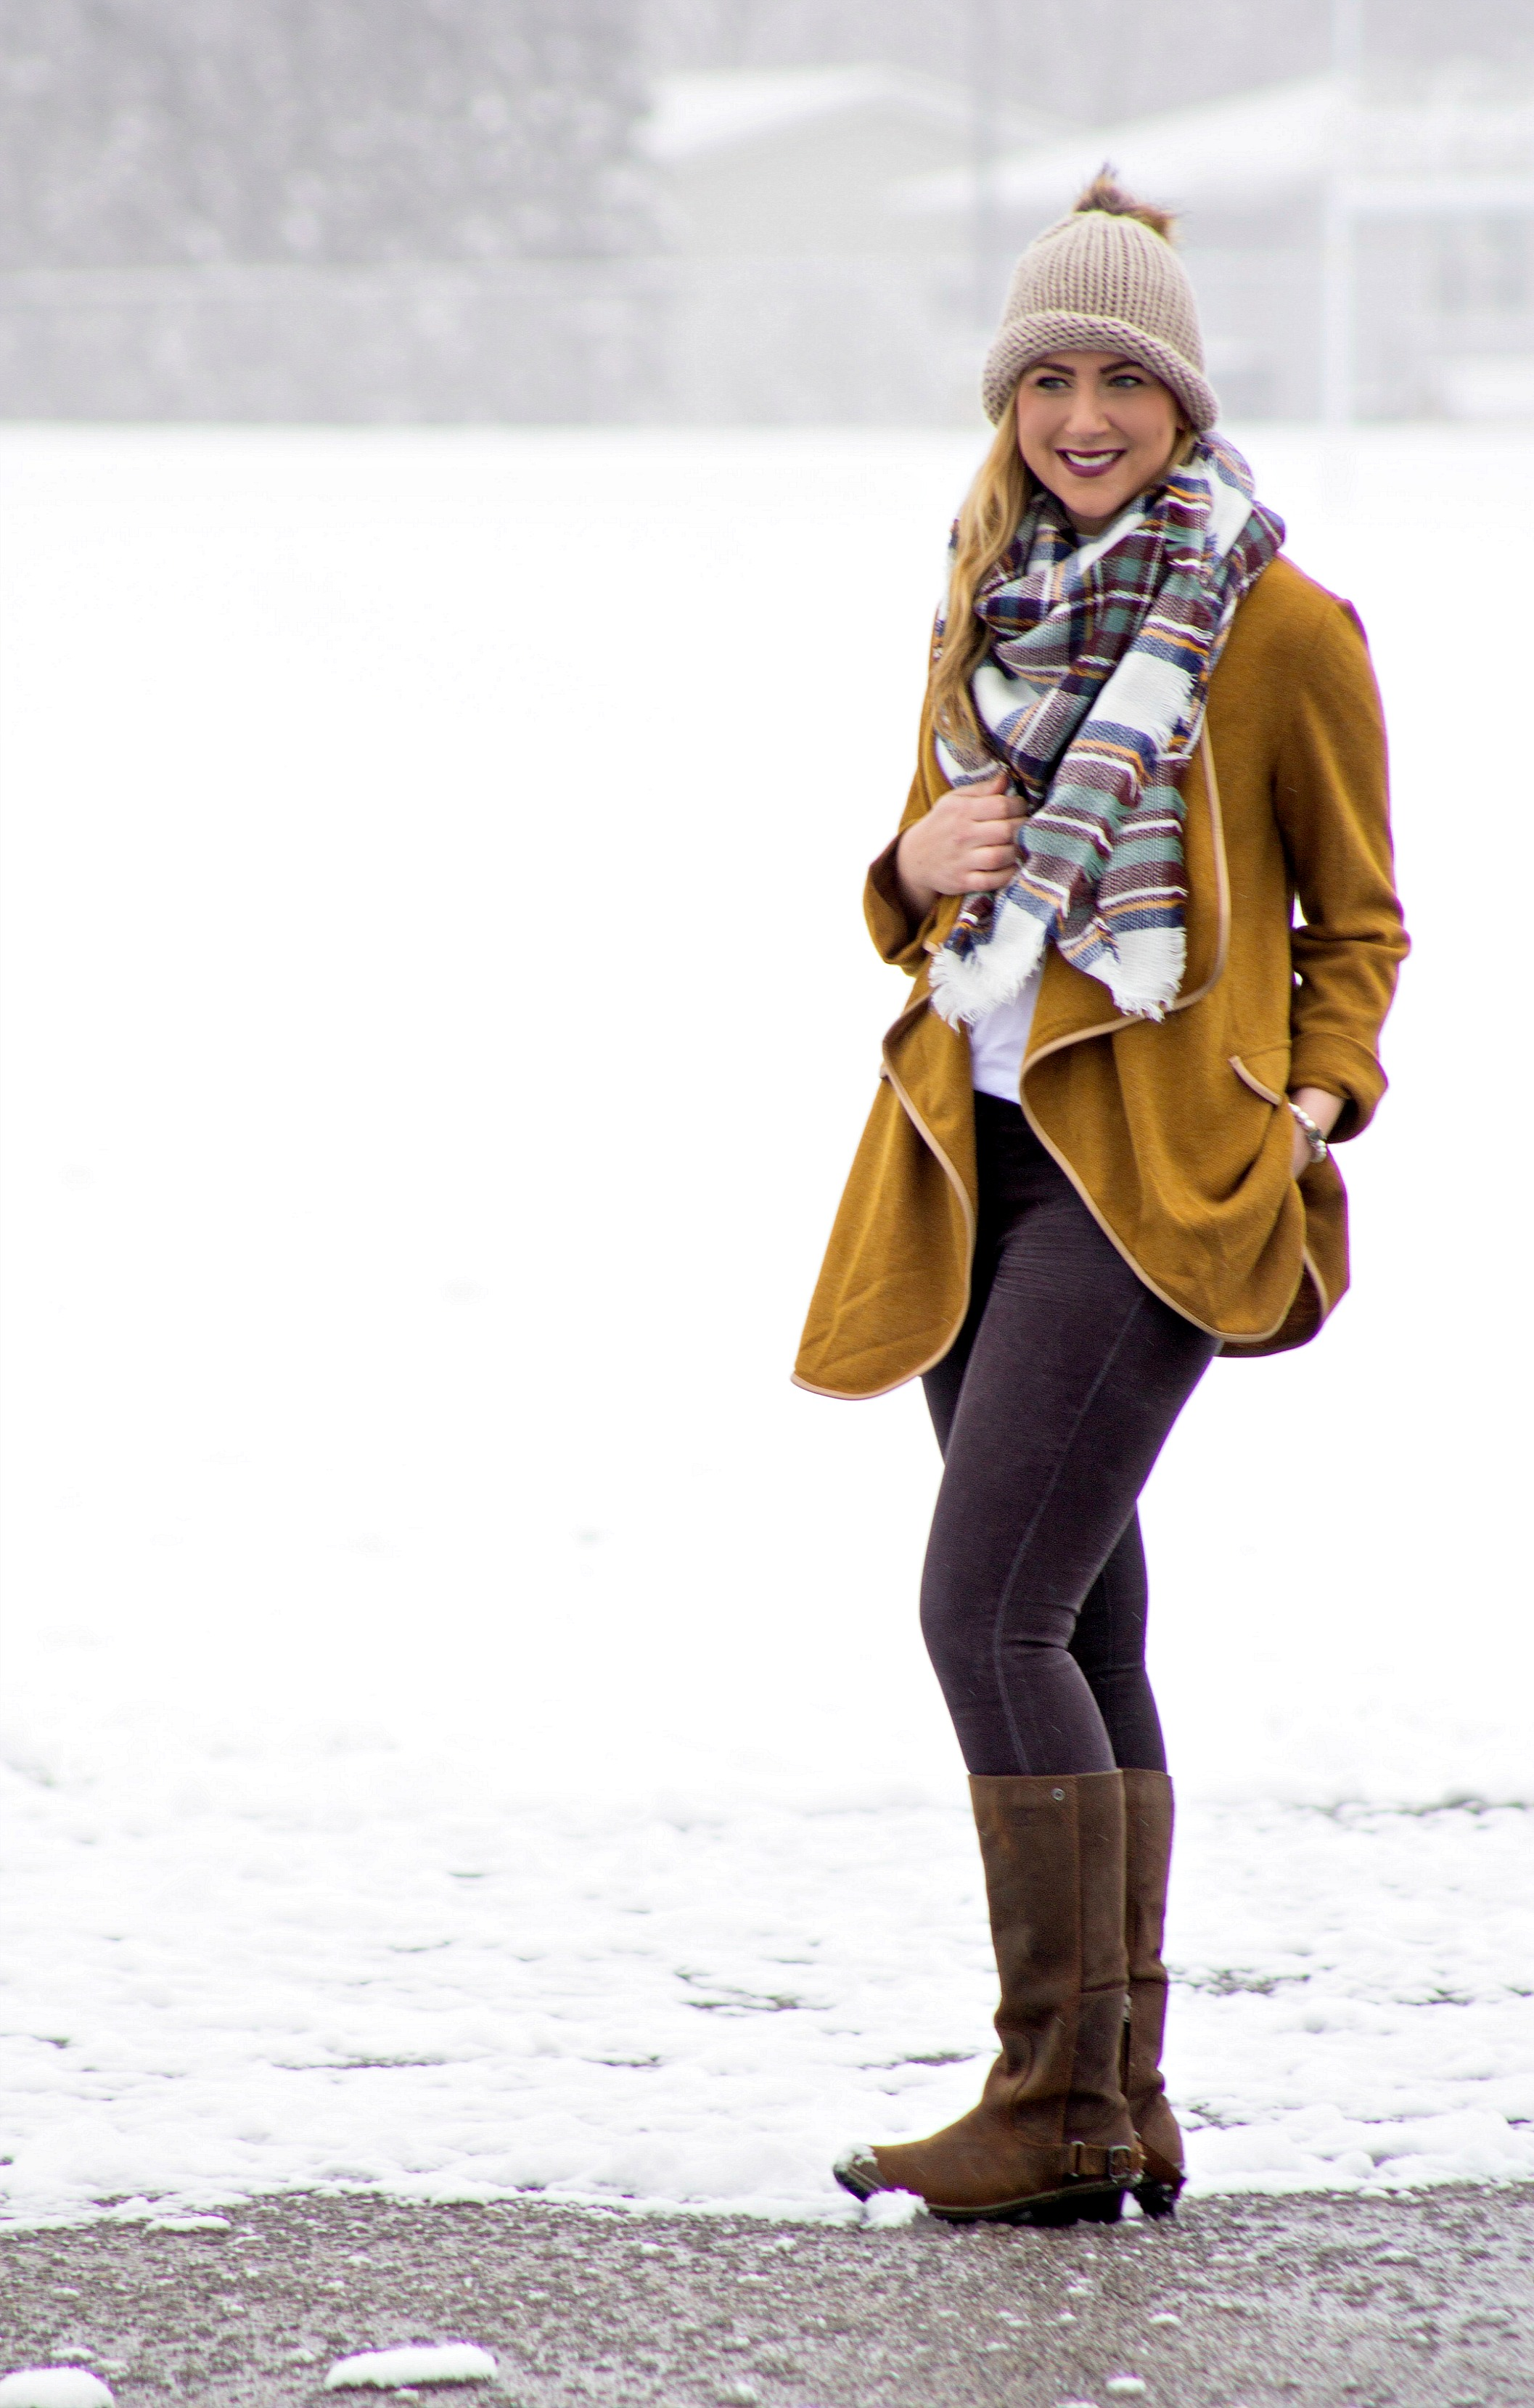 Mustard Yellow Cardigan + Blanket Scarf - Rachel's Lookbook